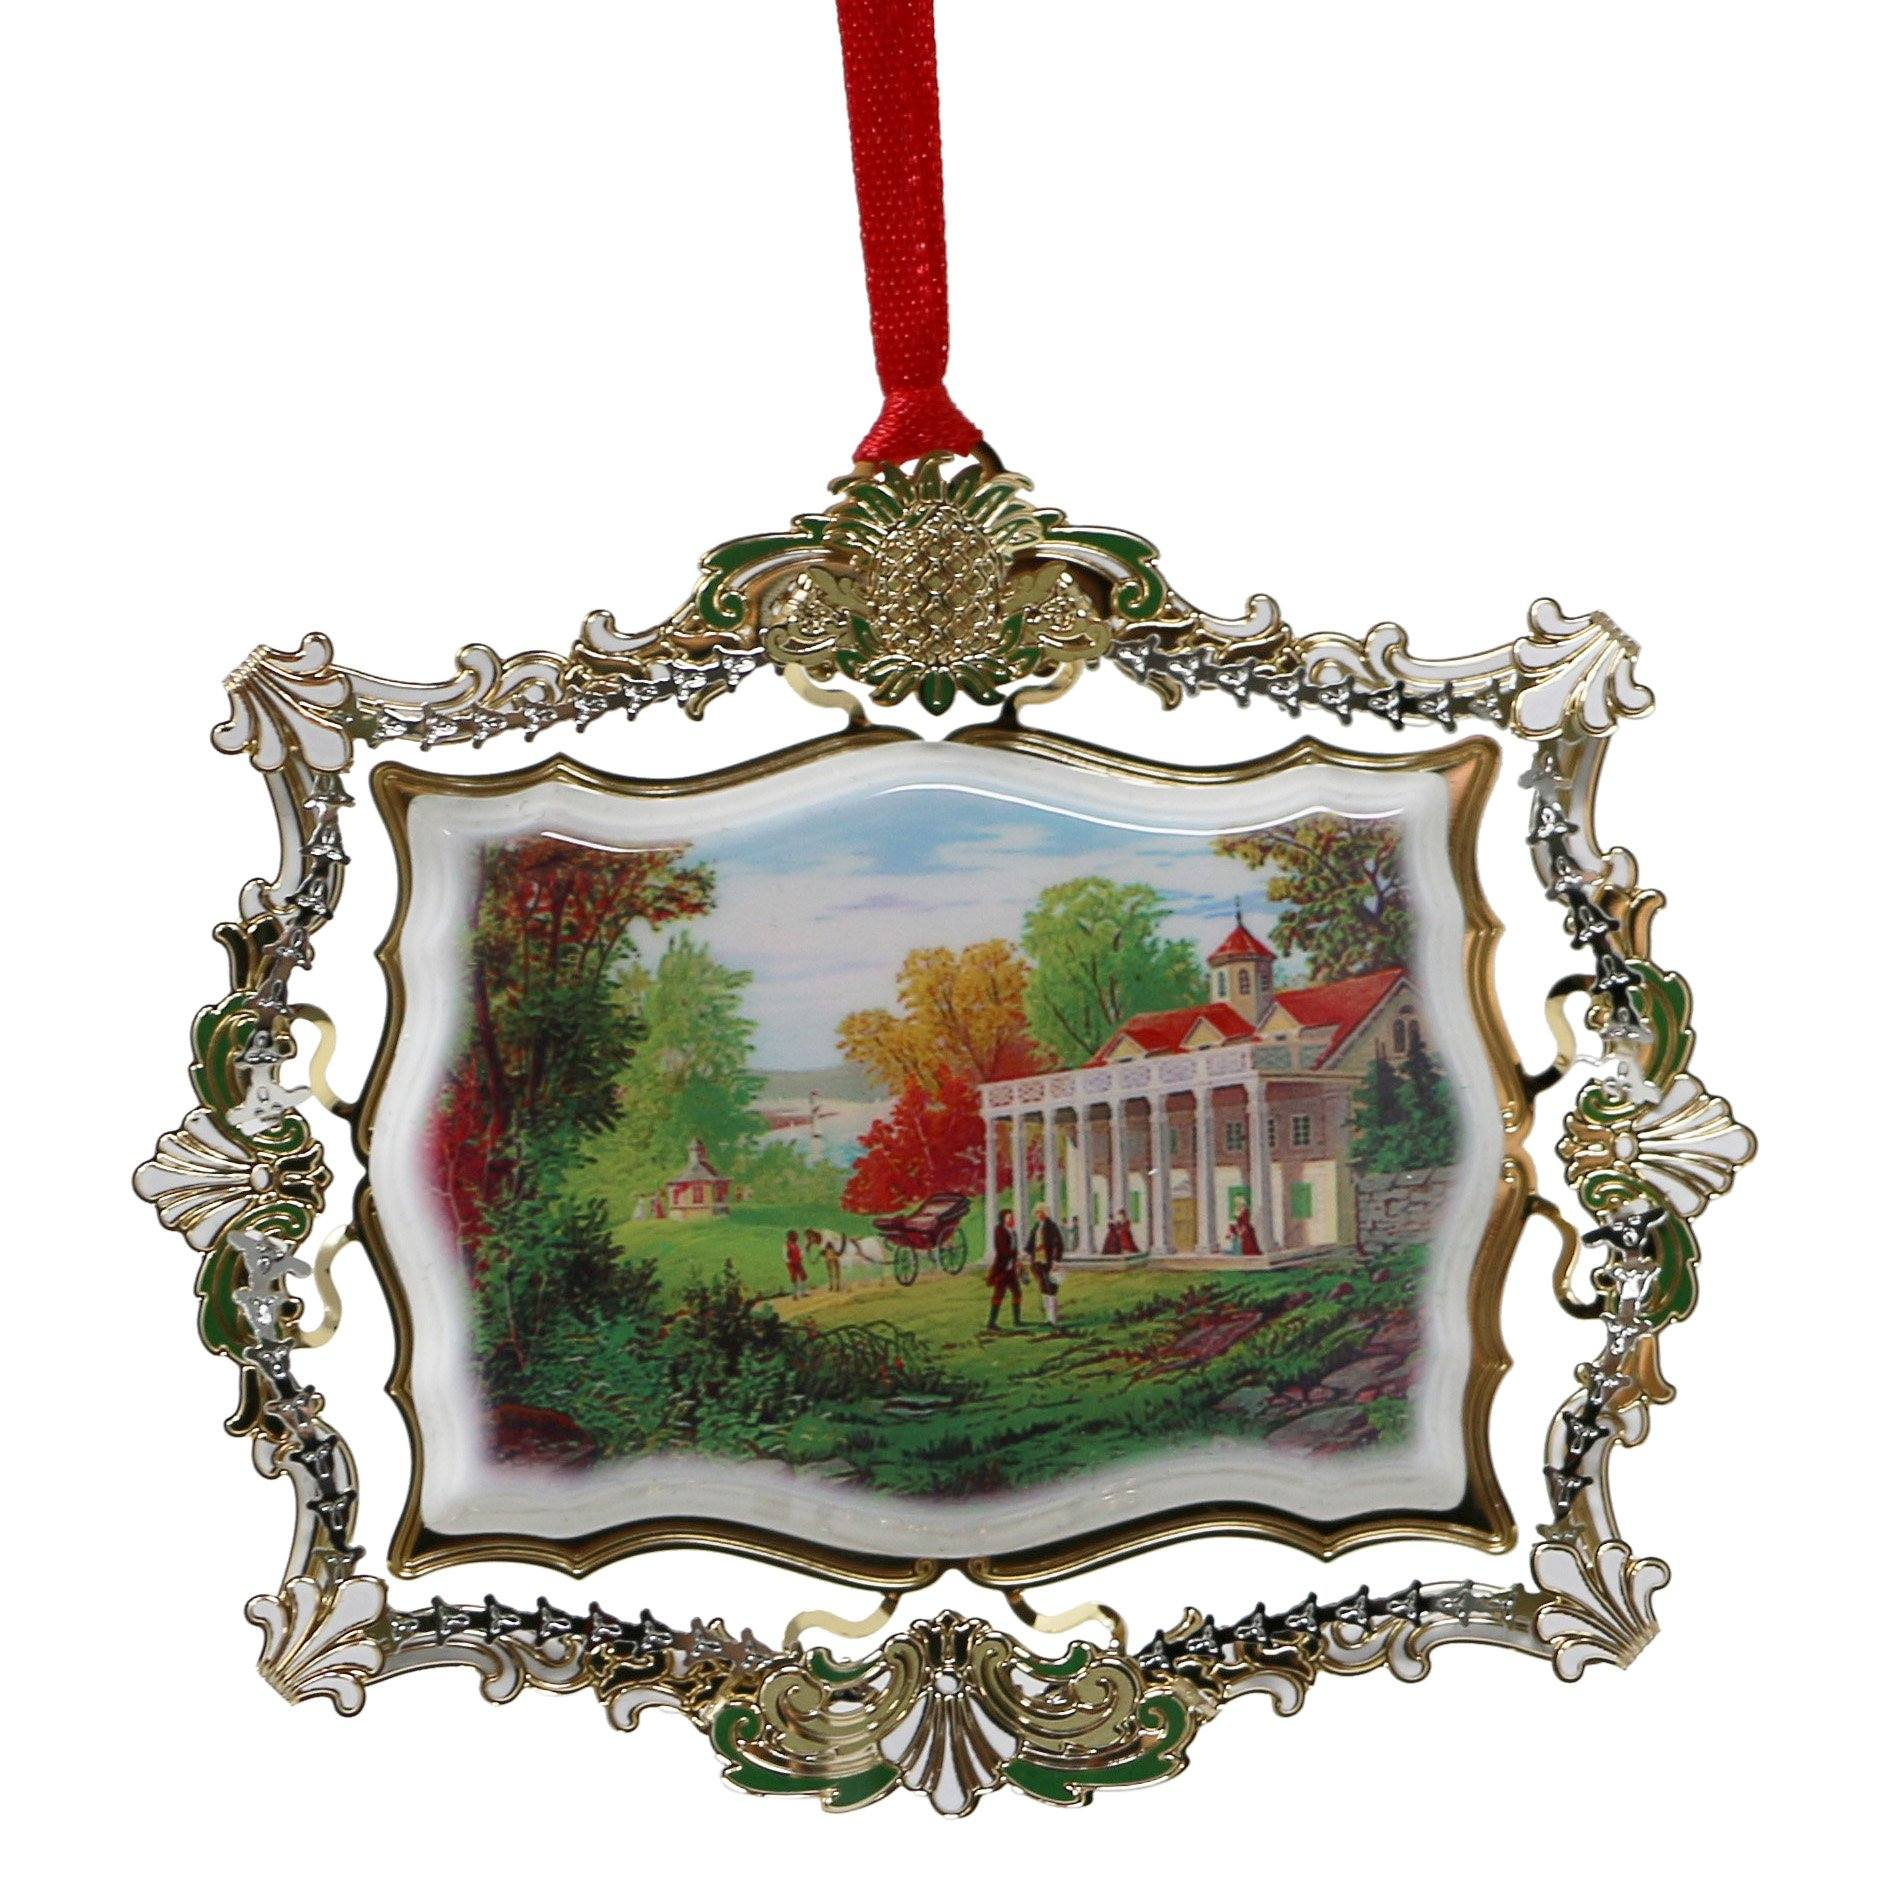 Mount Vernon 2012 Annual Ornament